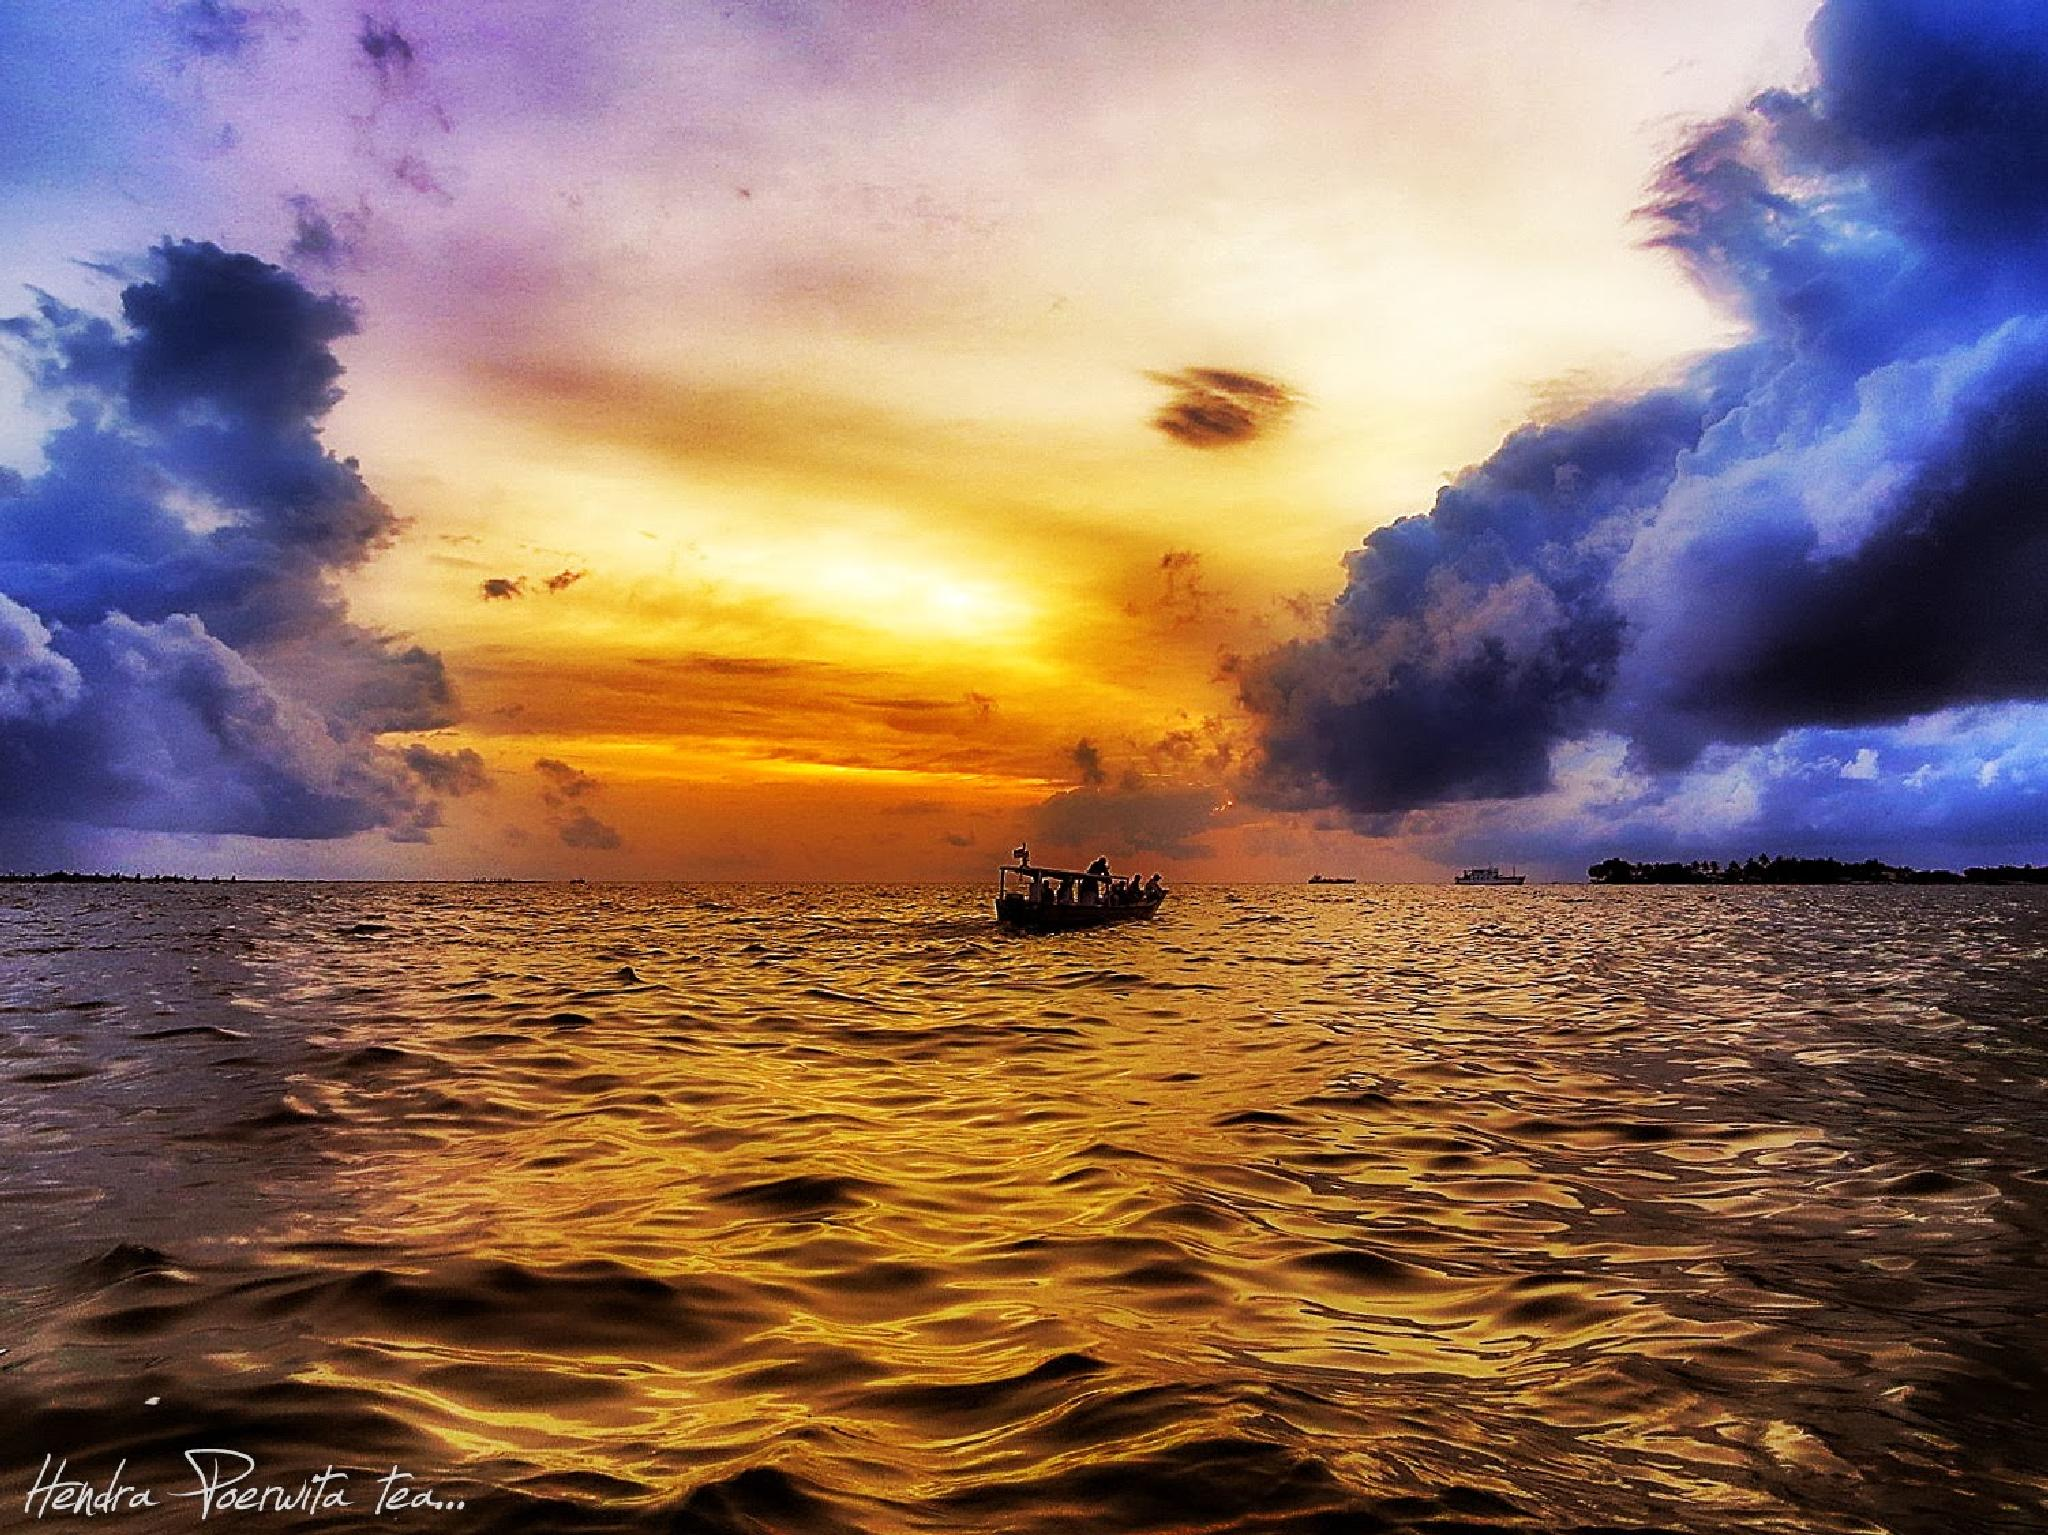 FACING THE STORM AHEAD by hendra.poerwita